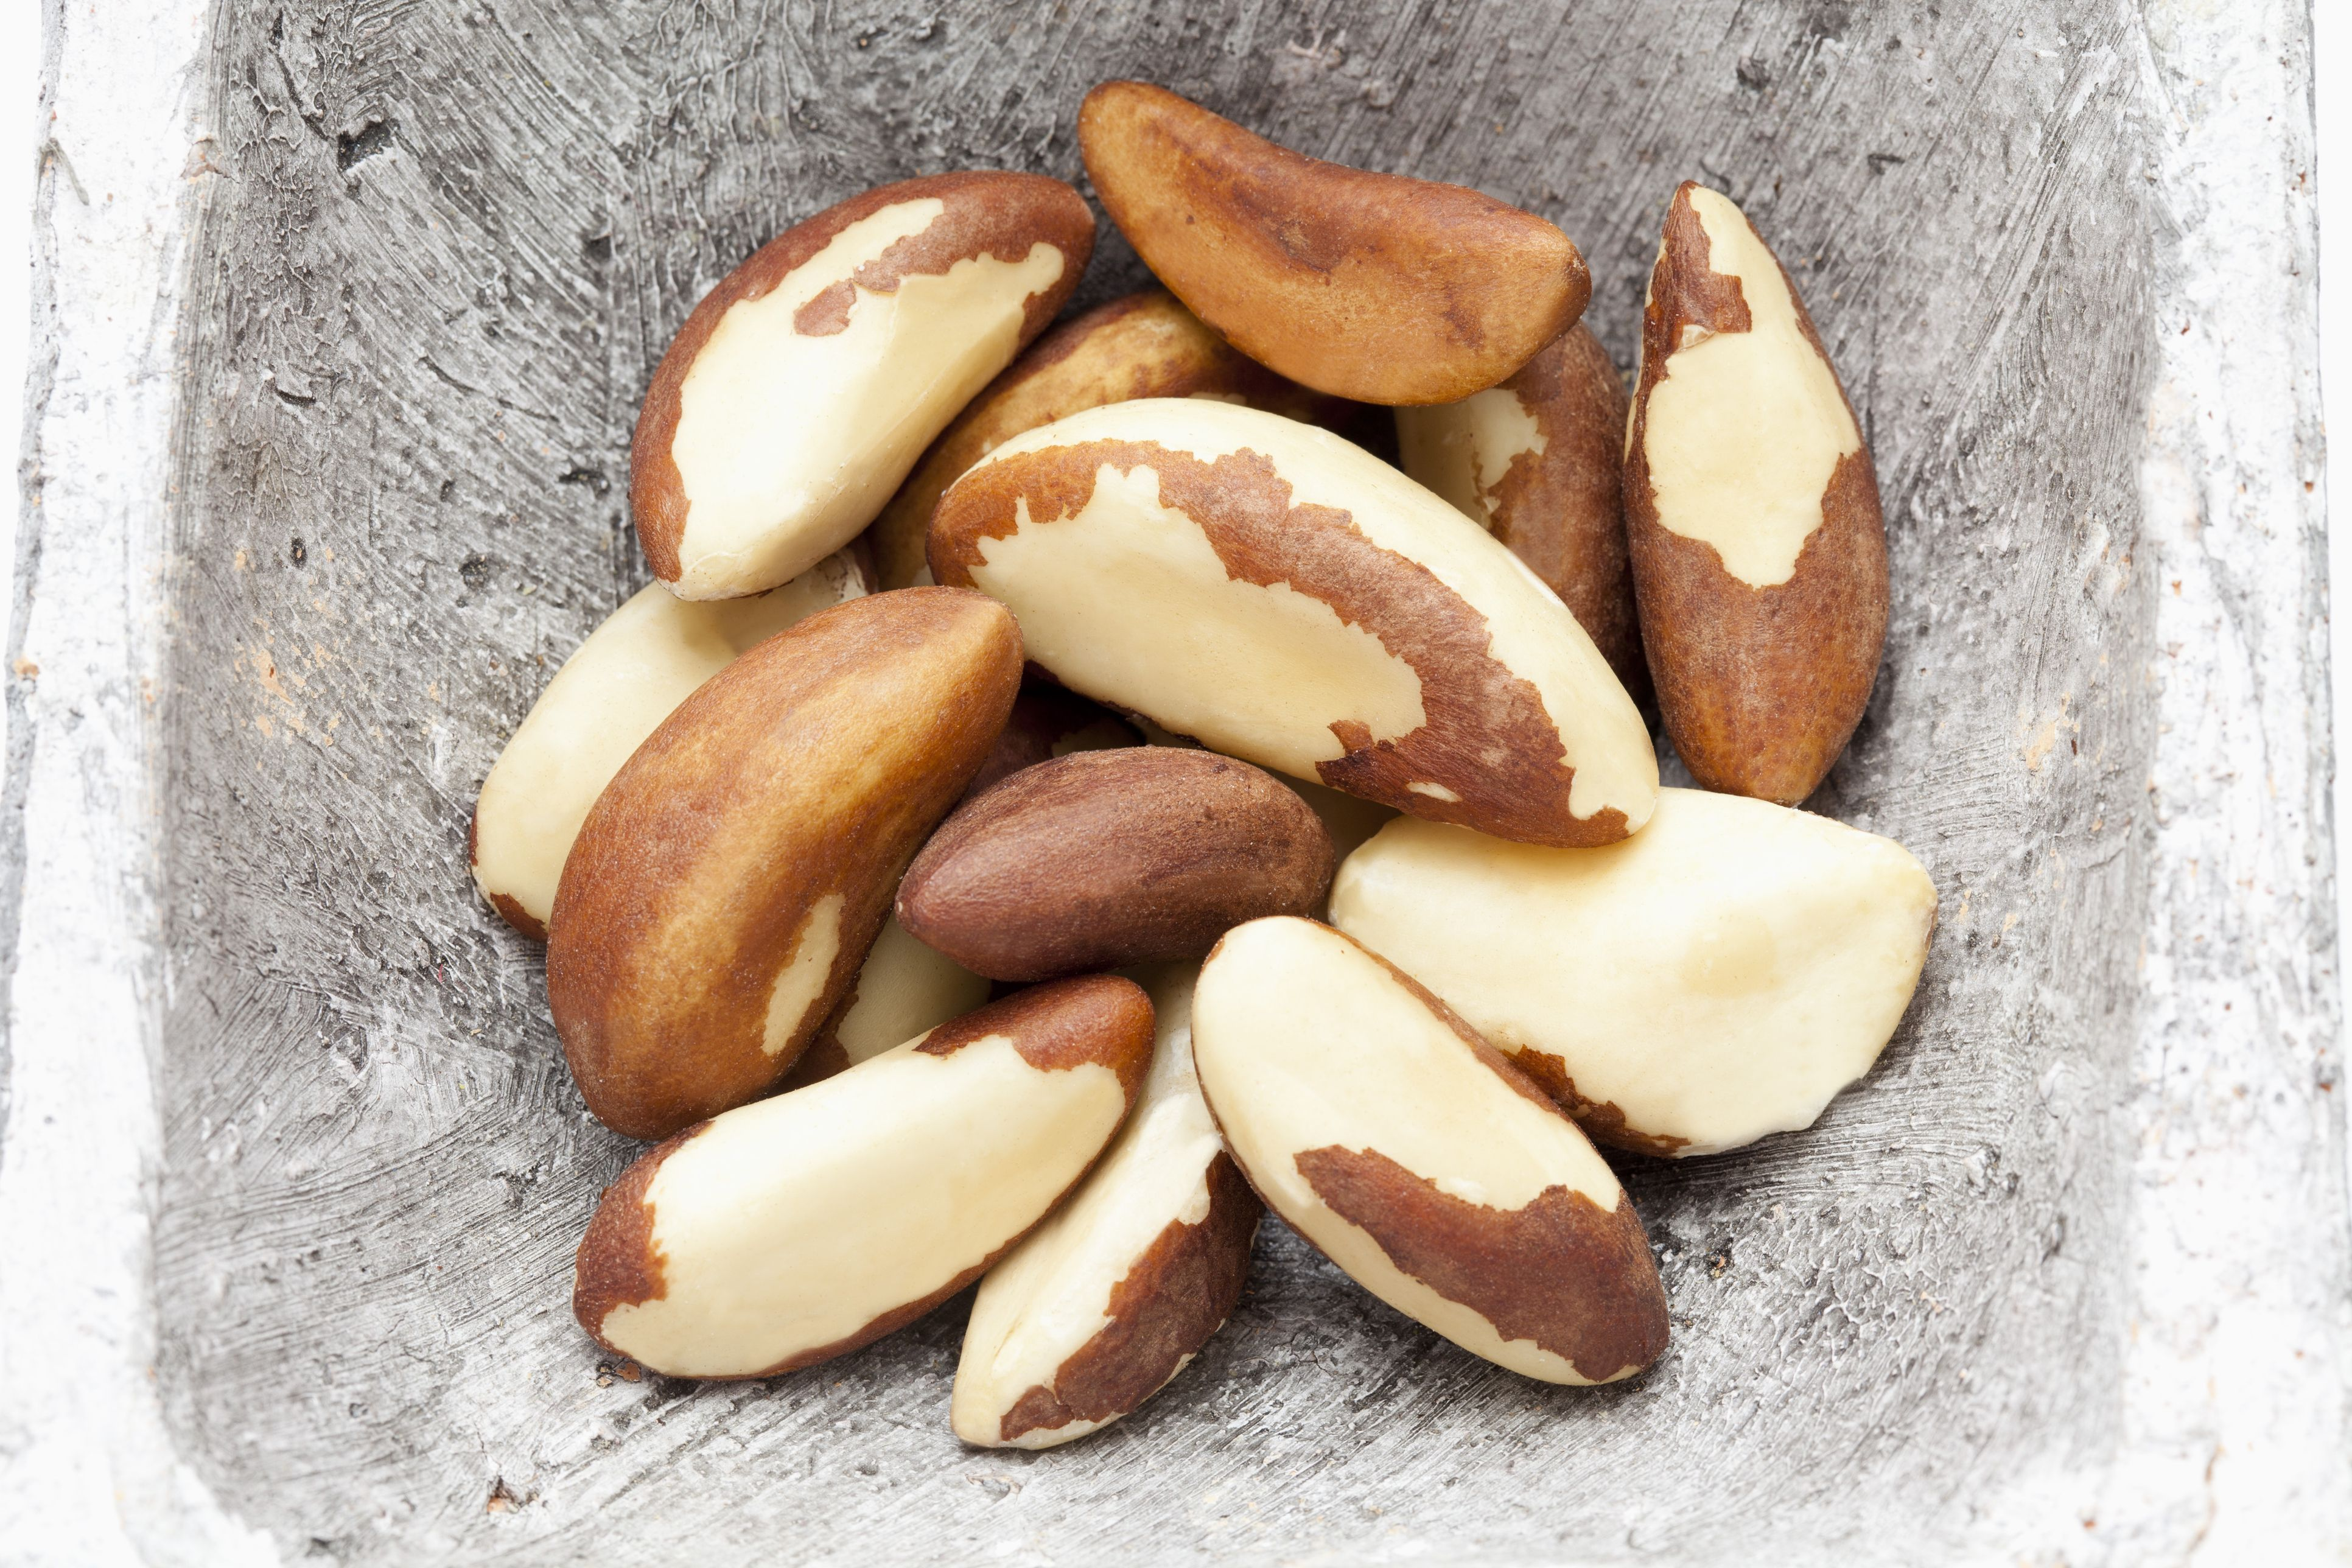 Brazil nuts in container, close up